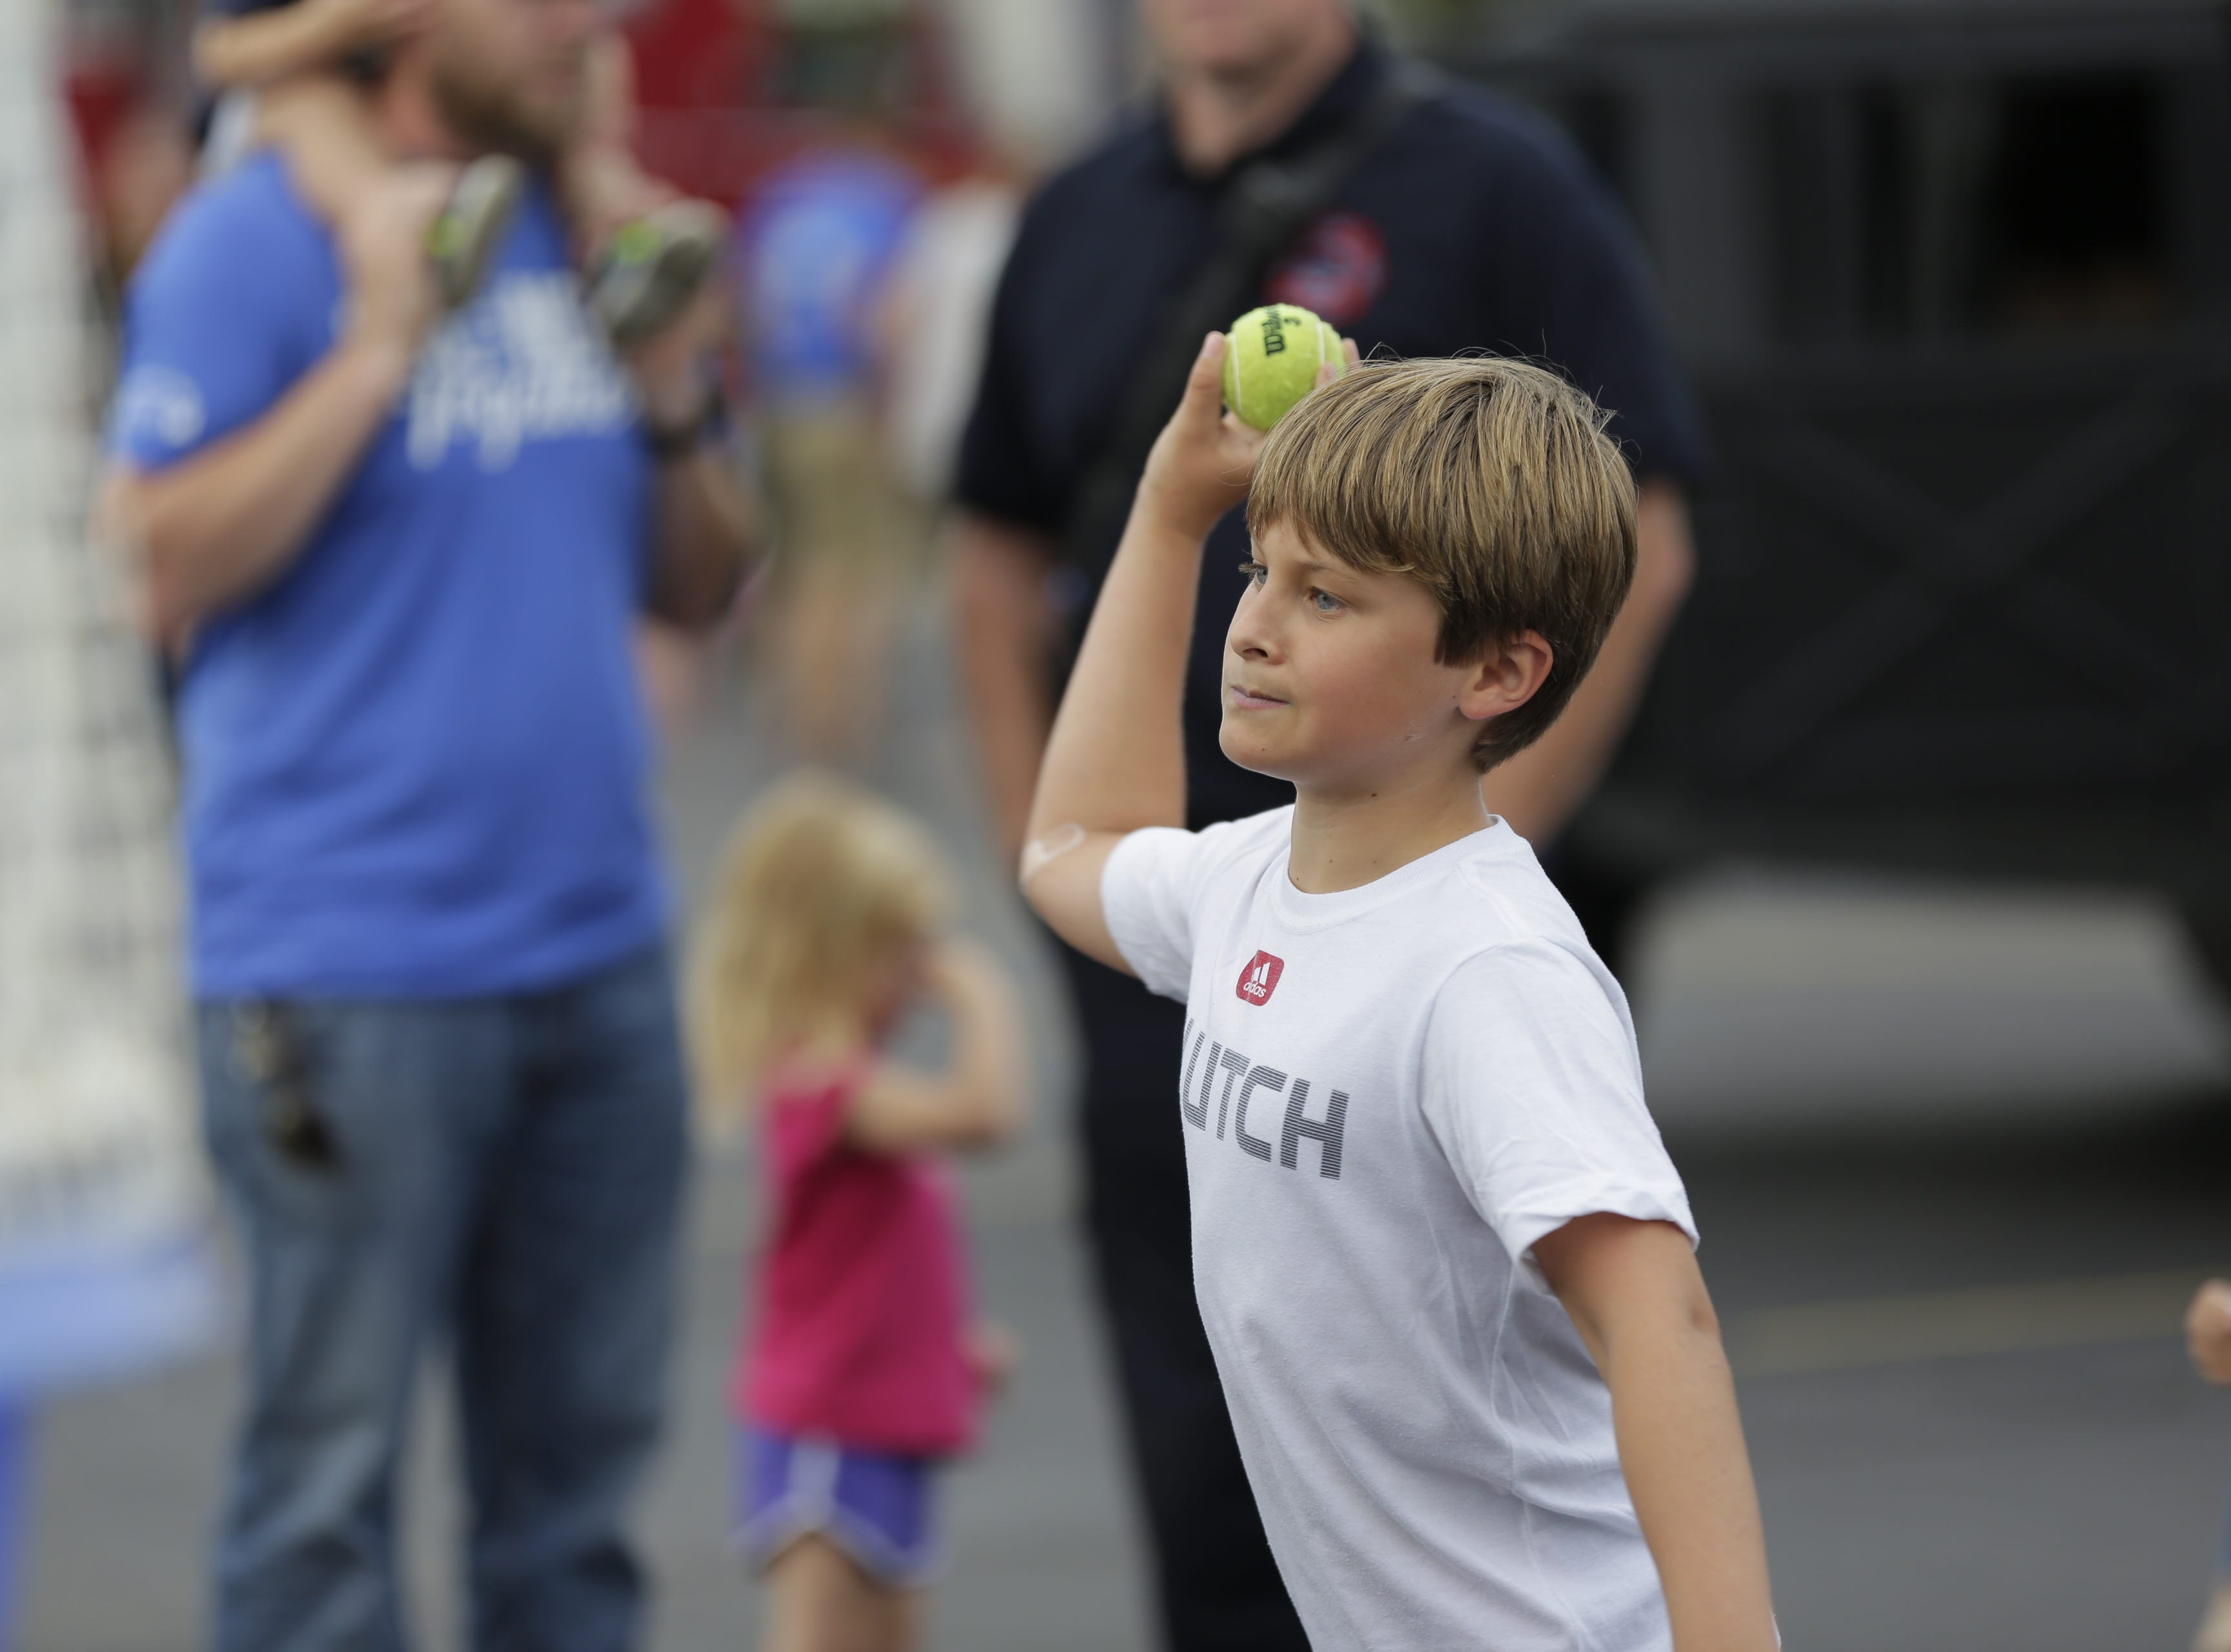 Sam Gasch, 10, throws a ball at the dunk tank during the National Night Out event put on by the Wisconsin Rapids Police Department in the Crossview Church parking lot in Wisconsin Rapids Tuesday, August 7, 2018.